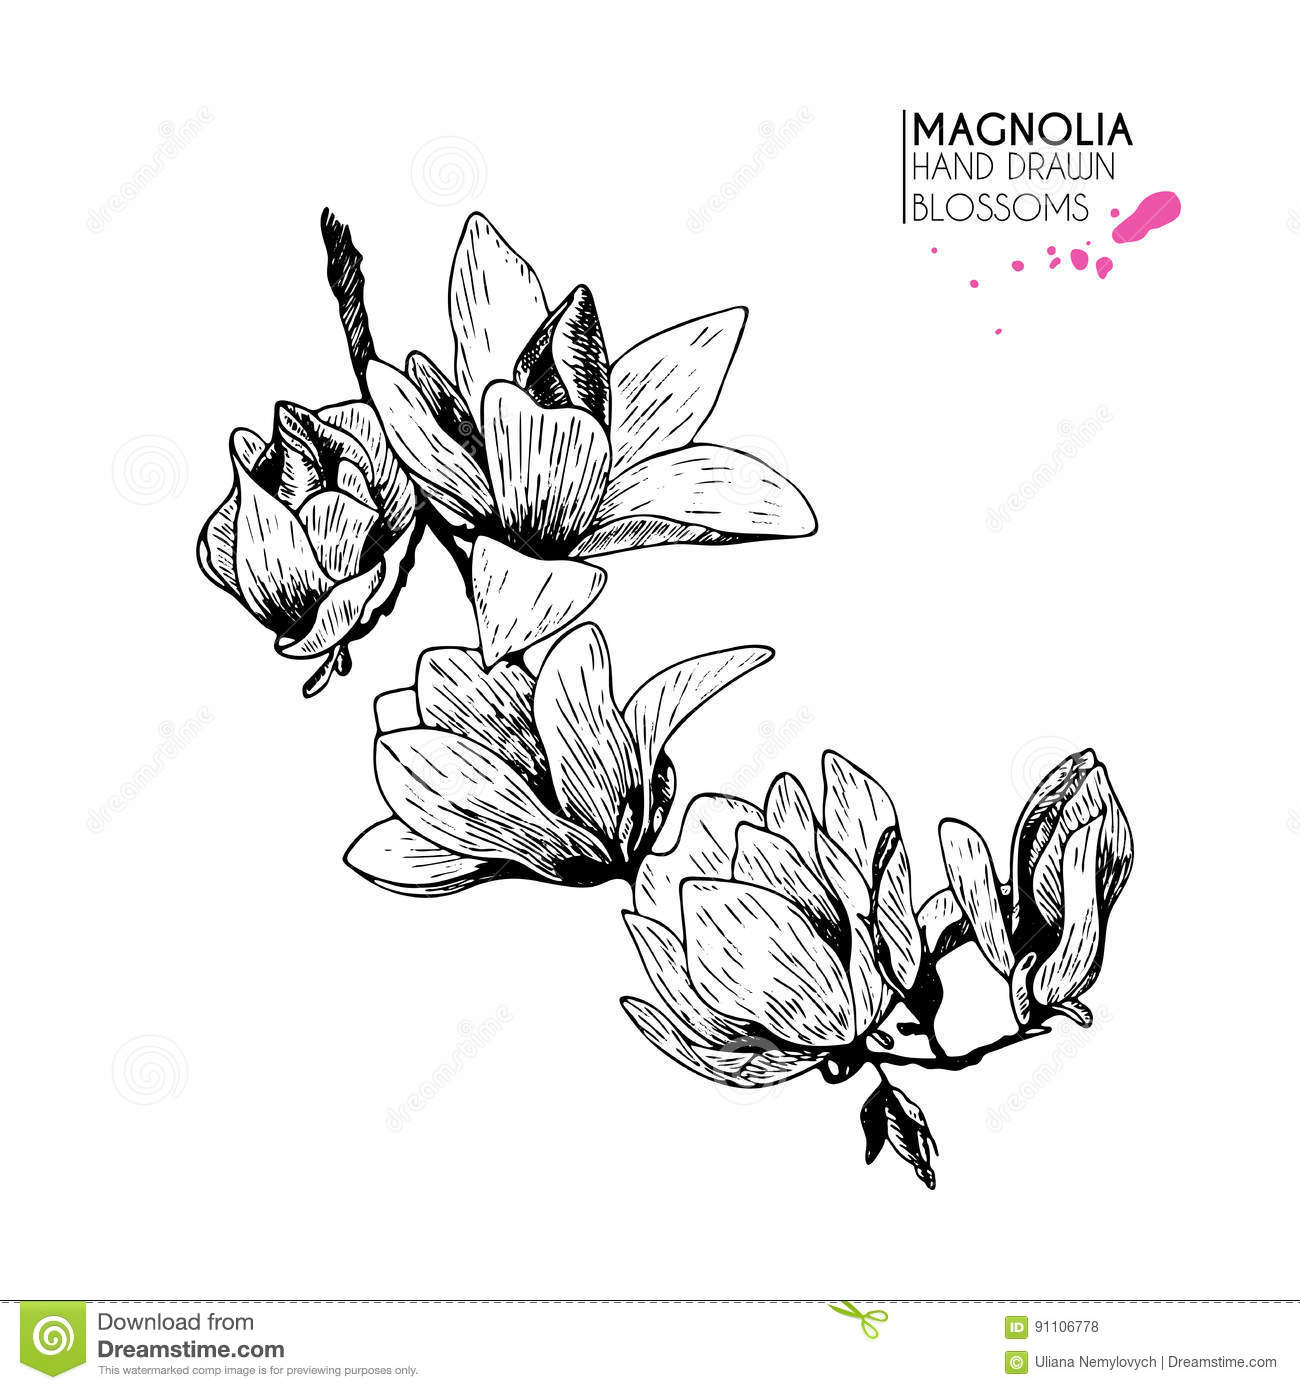 Hydrangea flower coloring pages - Vector Hand Drawn Hydrangea Isolated On White Background Engraved Vintage Botanical Illustration